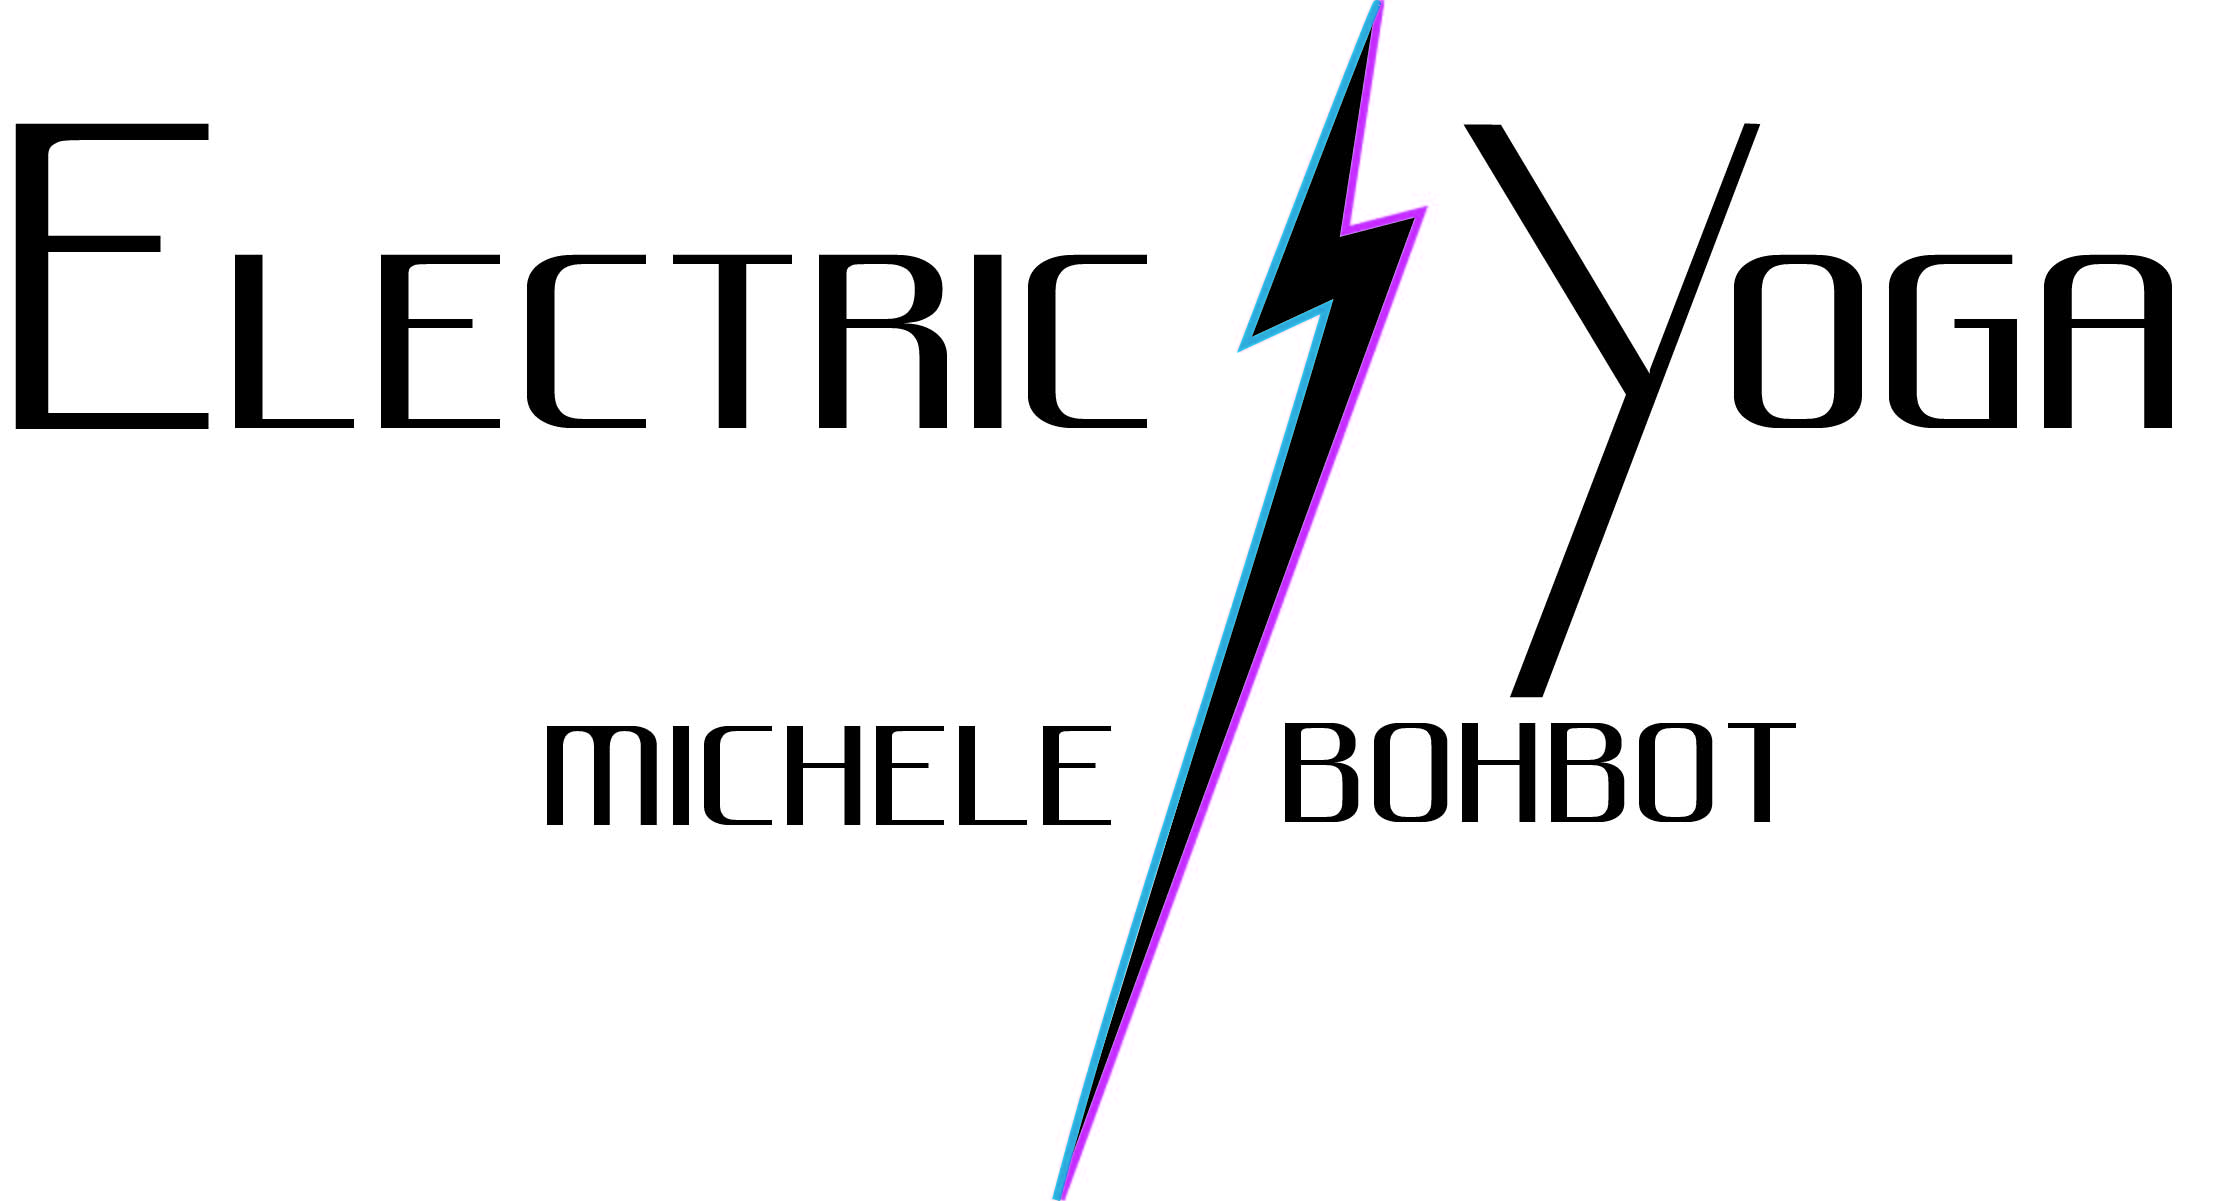 Electric Company Logo Joy Studio Design Gallery